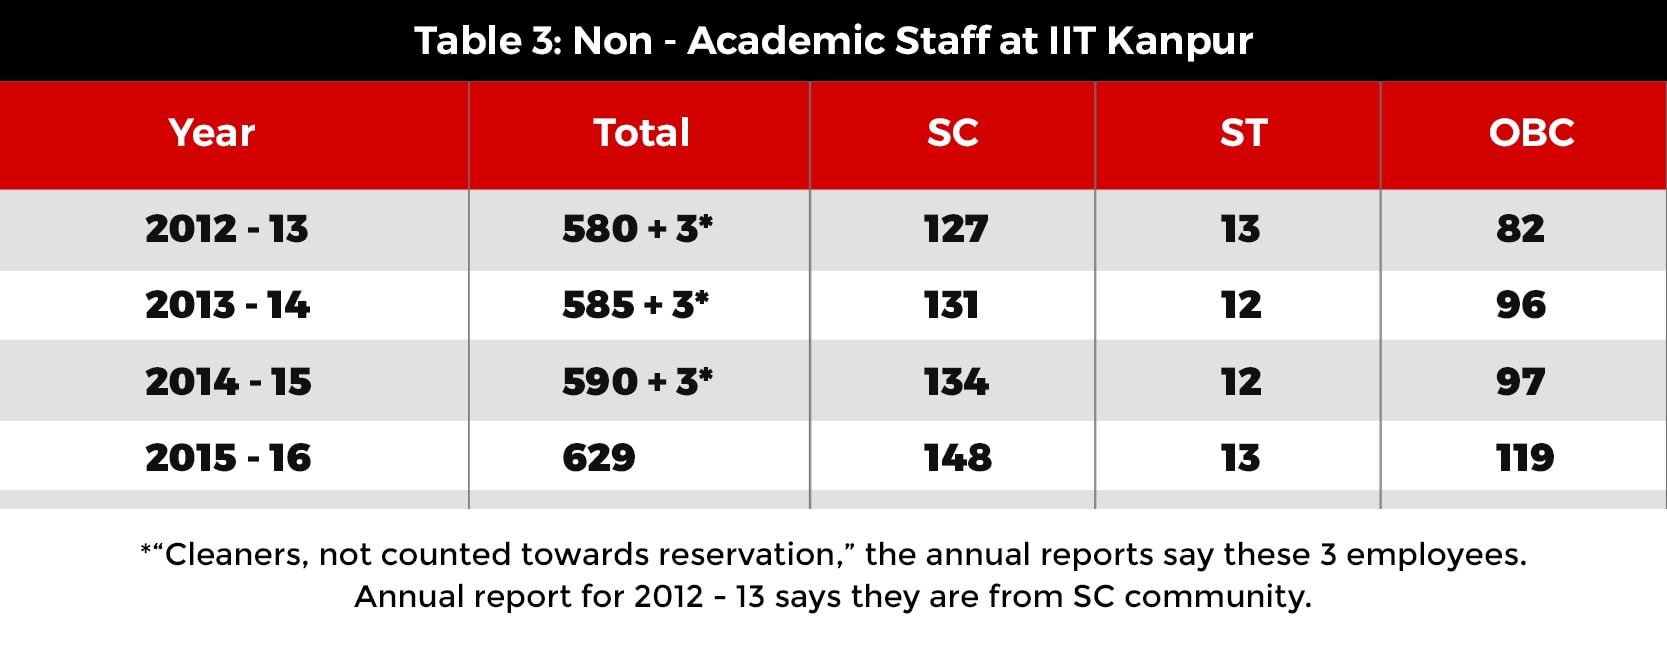 Year;Total;SC;ST;OBC; 2012-13; 580+3*;127;13;82;2013-14;585+3*;131;32;96;2014-15; 590+3*;134;12;97;2015-16;629;148;13;119;